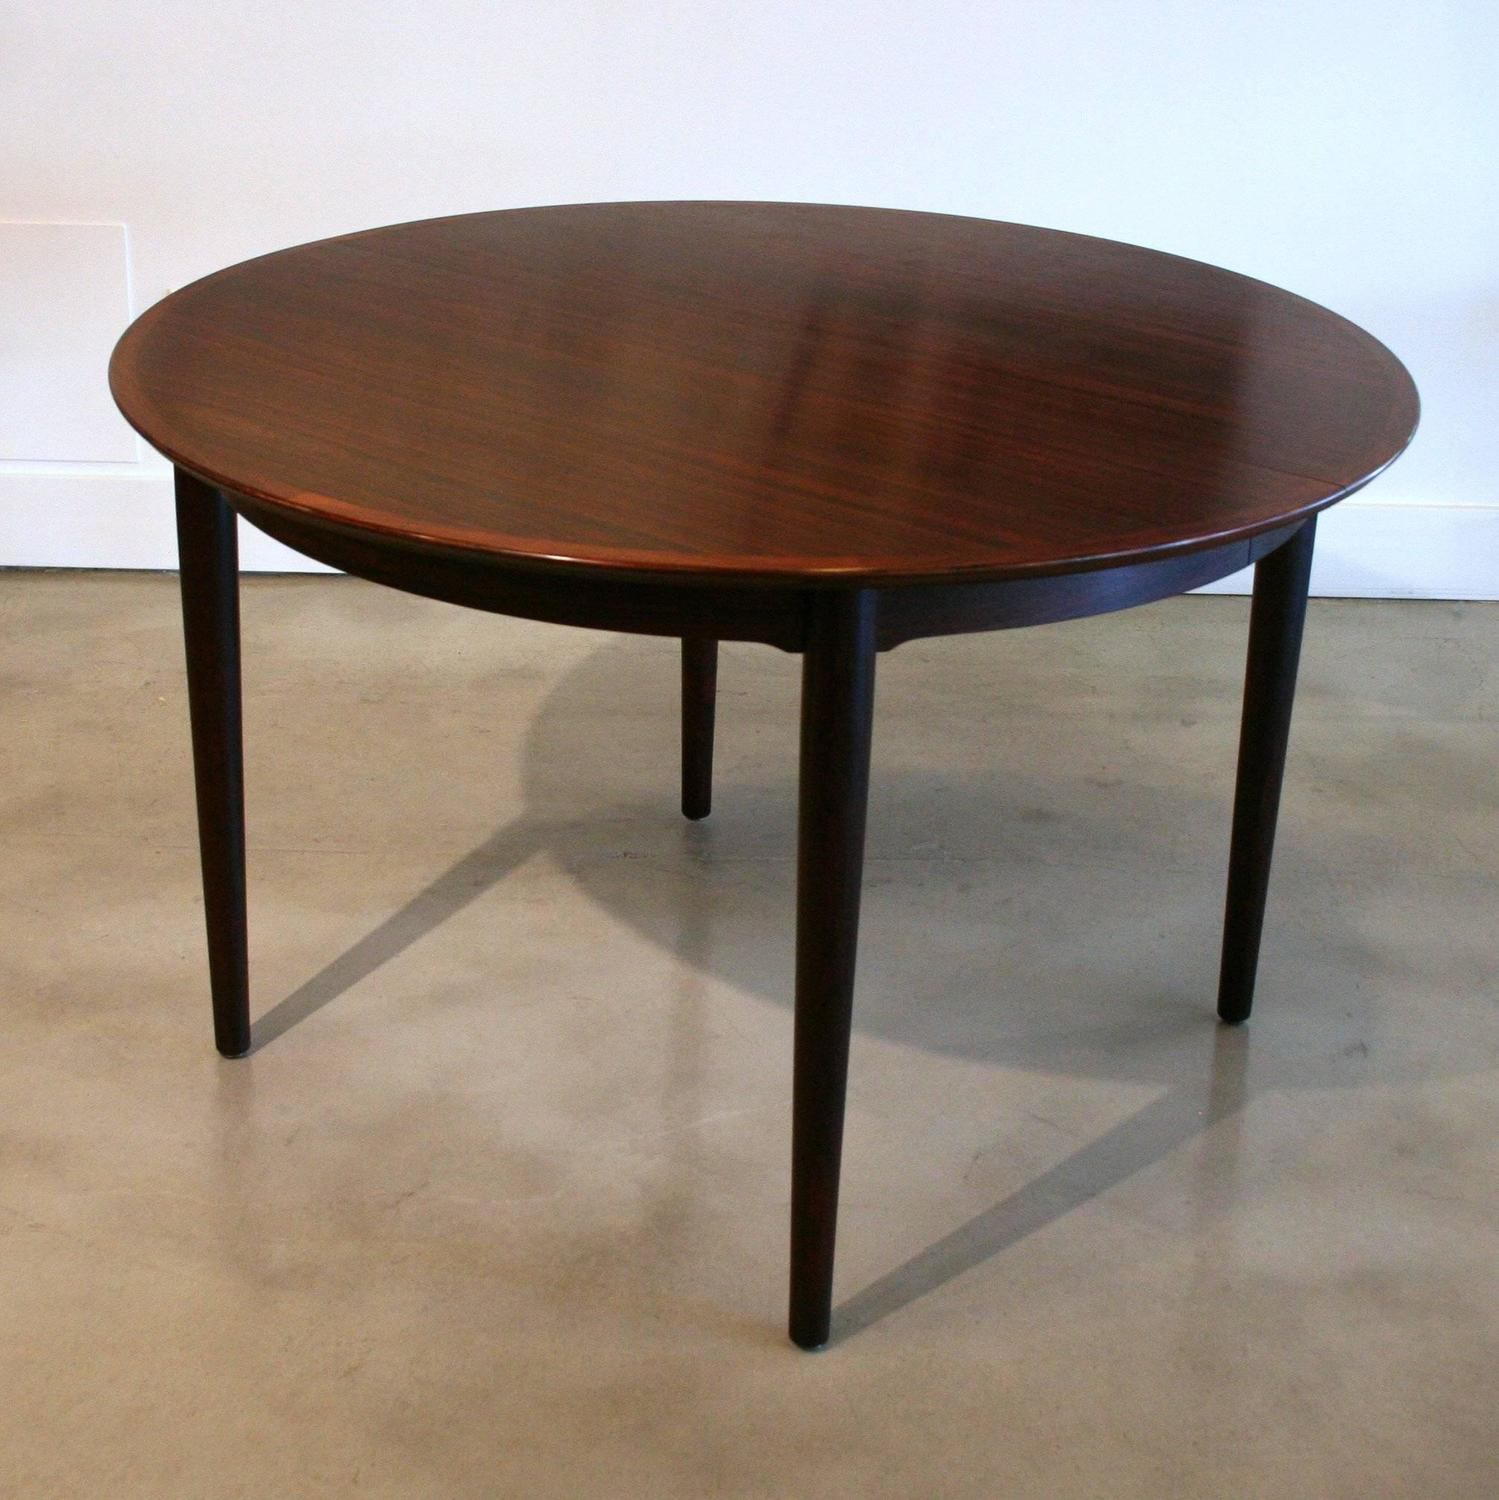 Vintage Danish Rosewood Extendable Dining Table by Arne  : IMG6967z from www.1stdibs.com size 1499 x 1500 jpeg 180kB